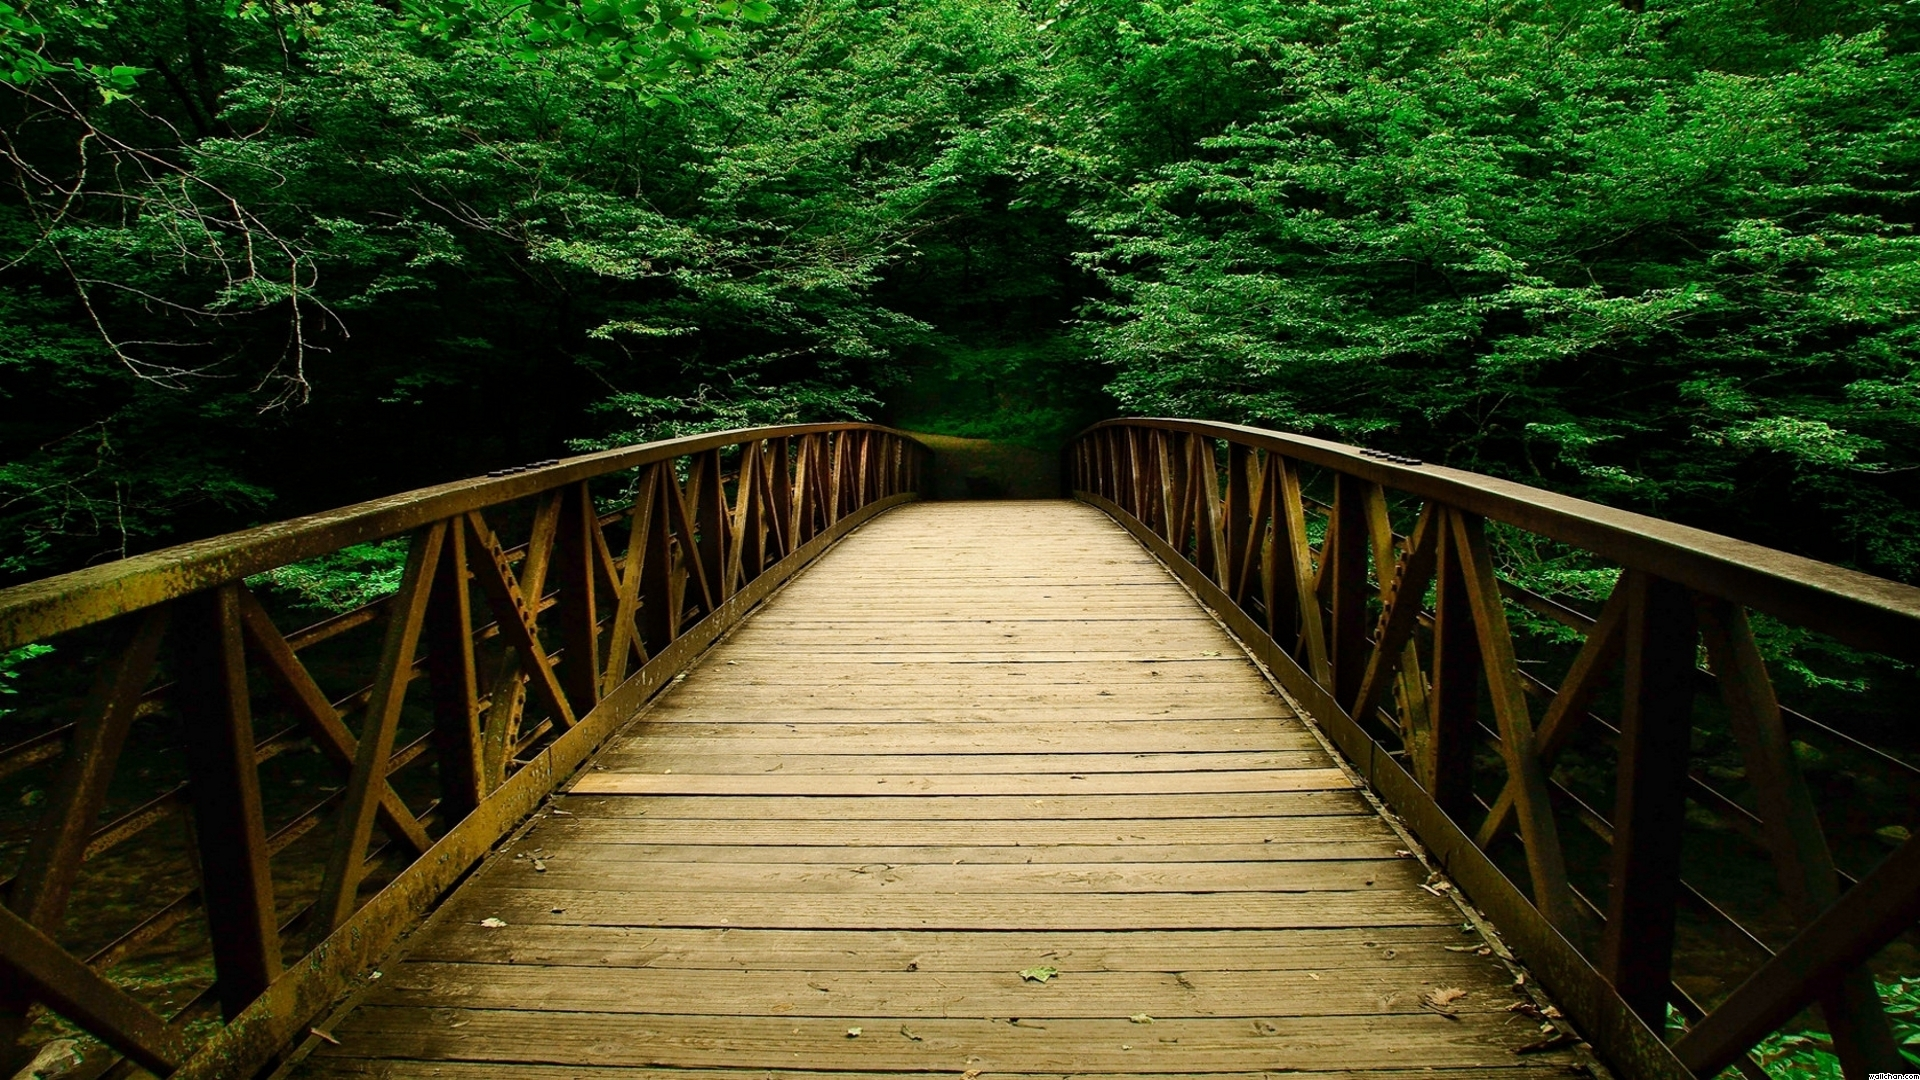 Download Bridge Bridges Nature Forest Forests Wallpaper | Full HD